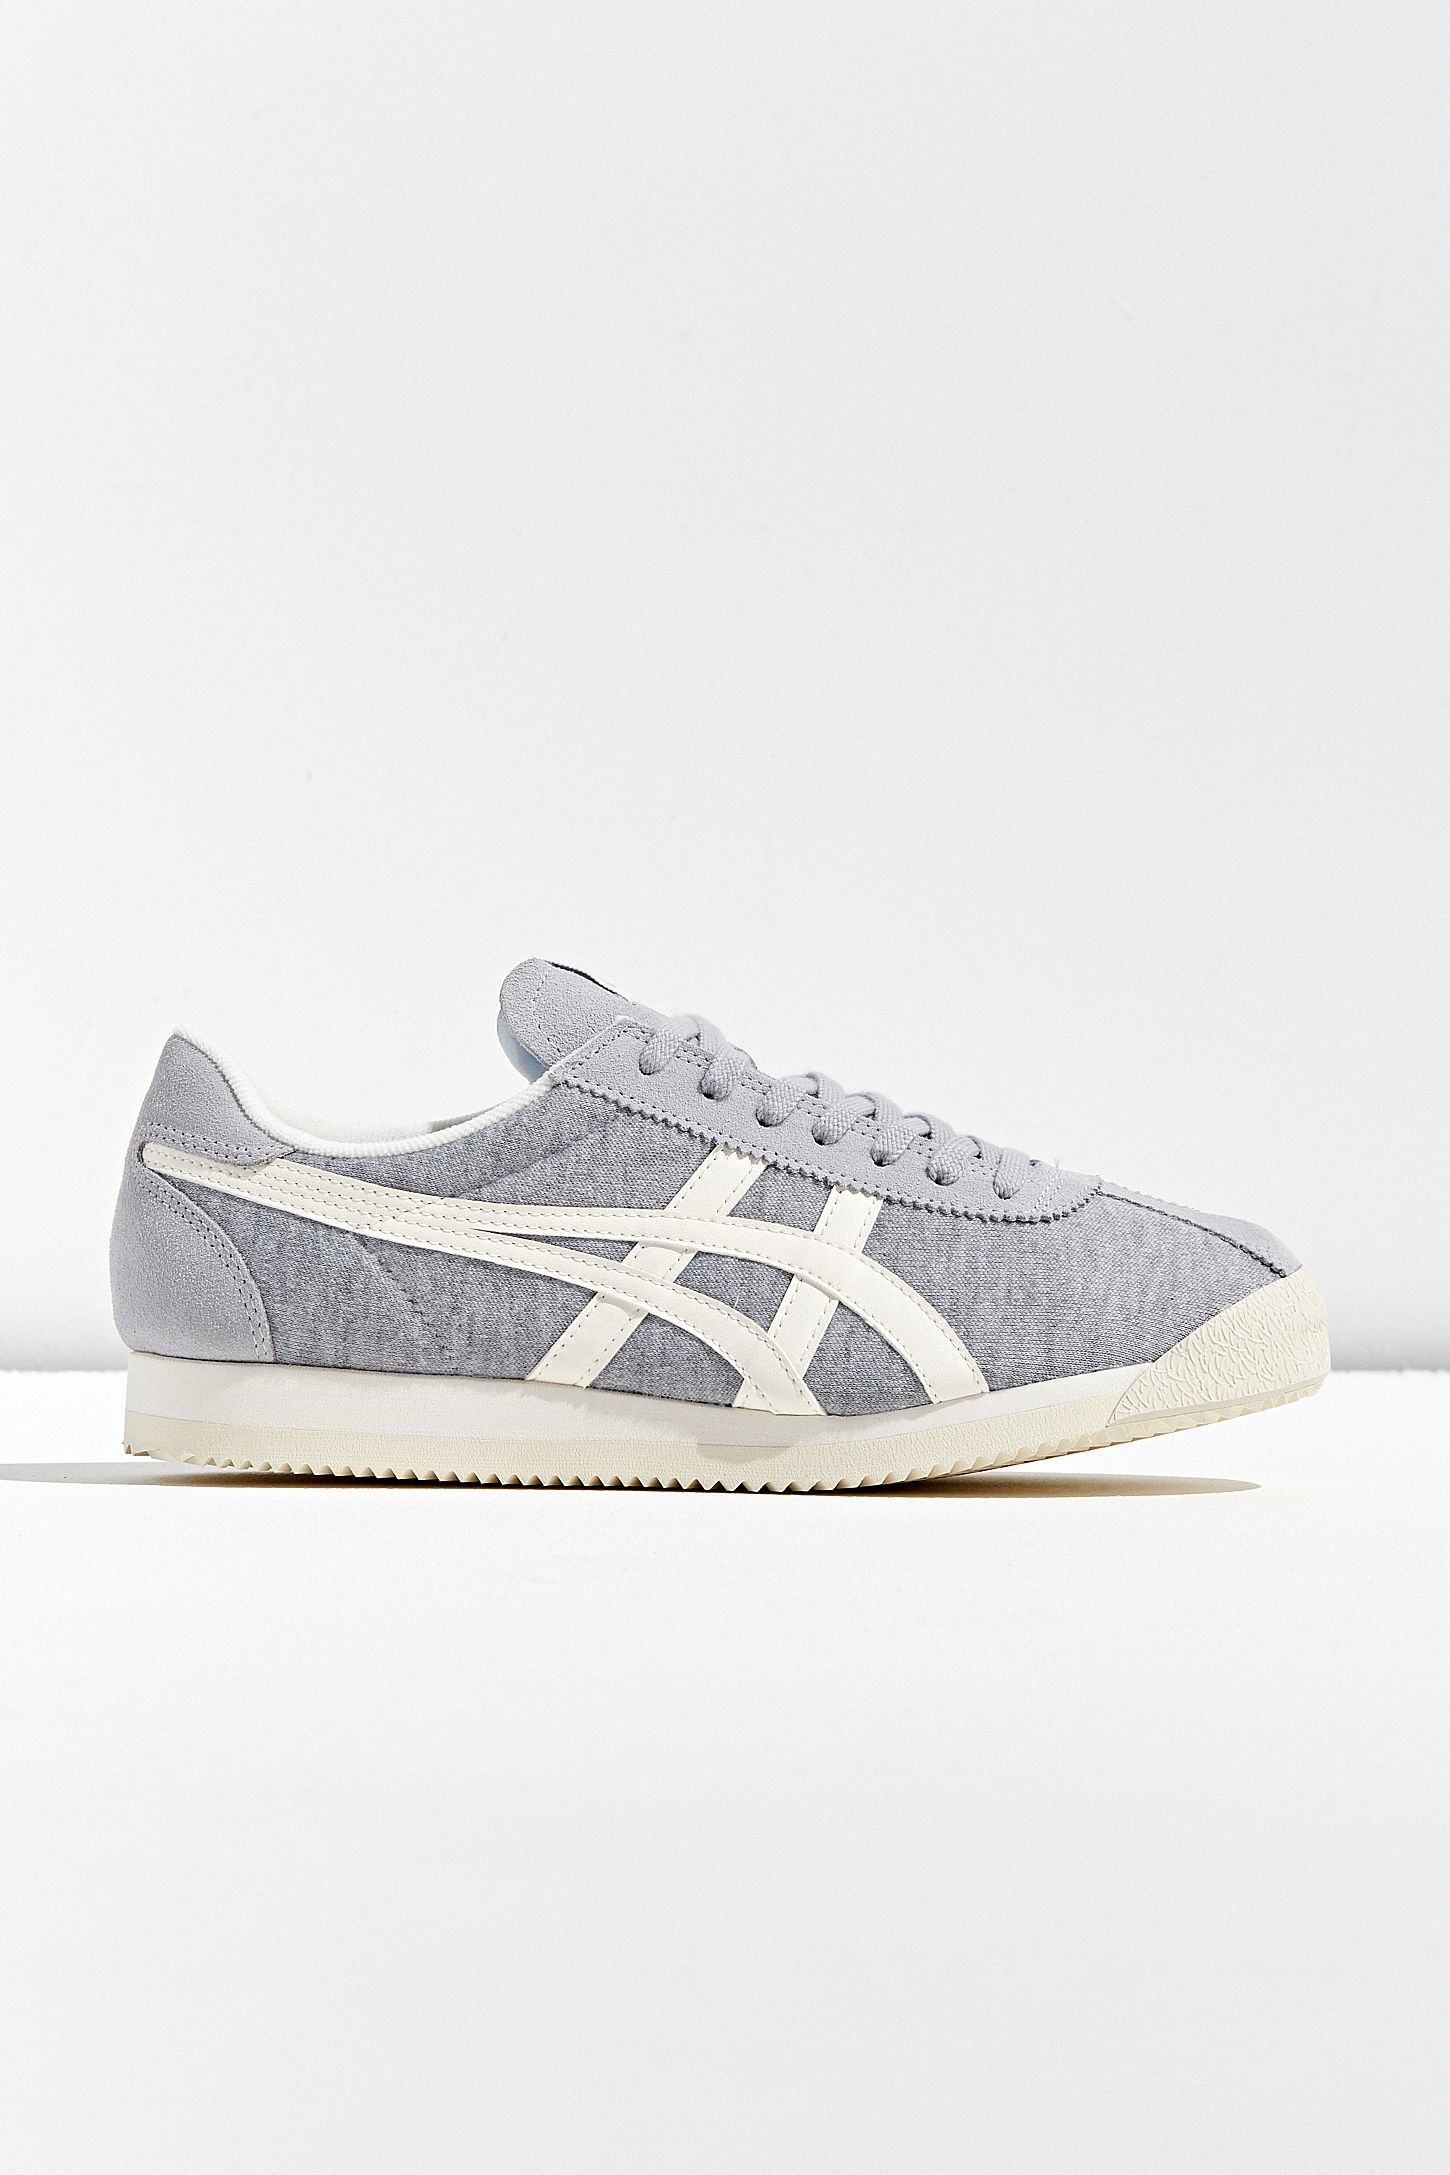 100% authentic bee09 af304 Onitsuka Tiger Corsair Sneaker